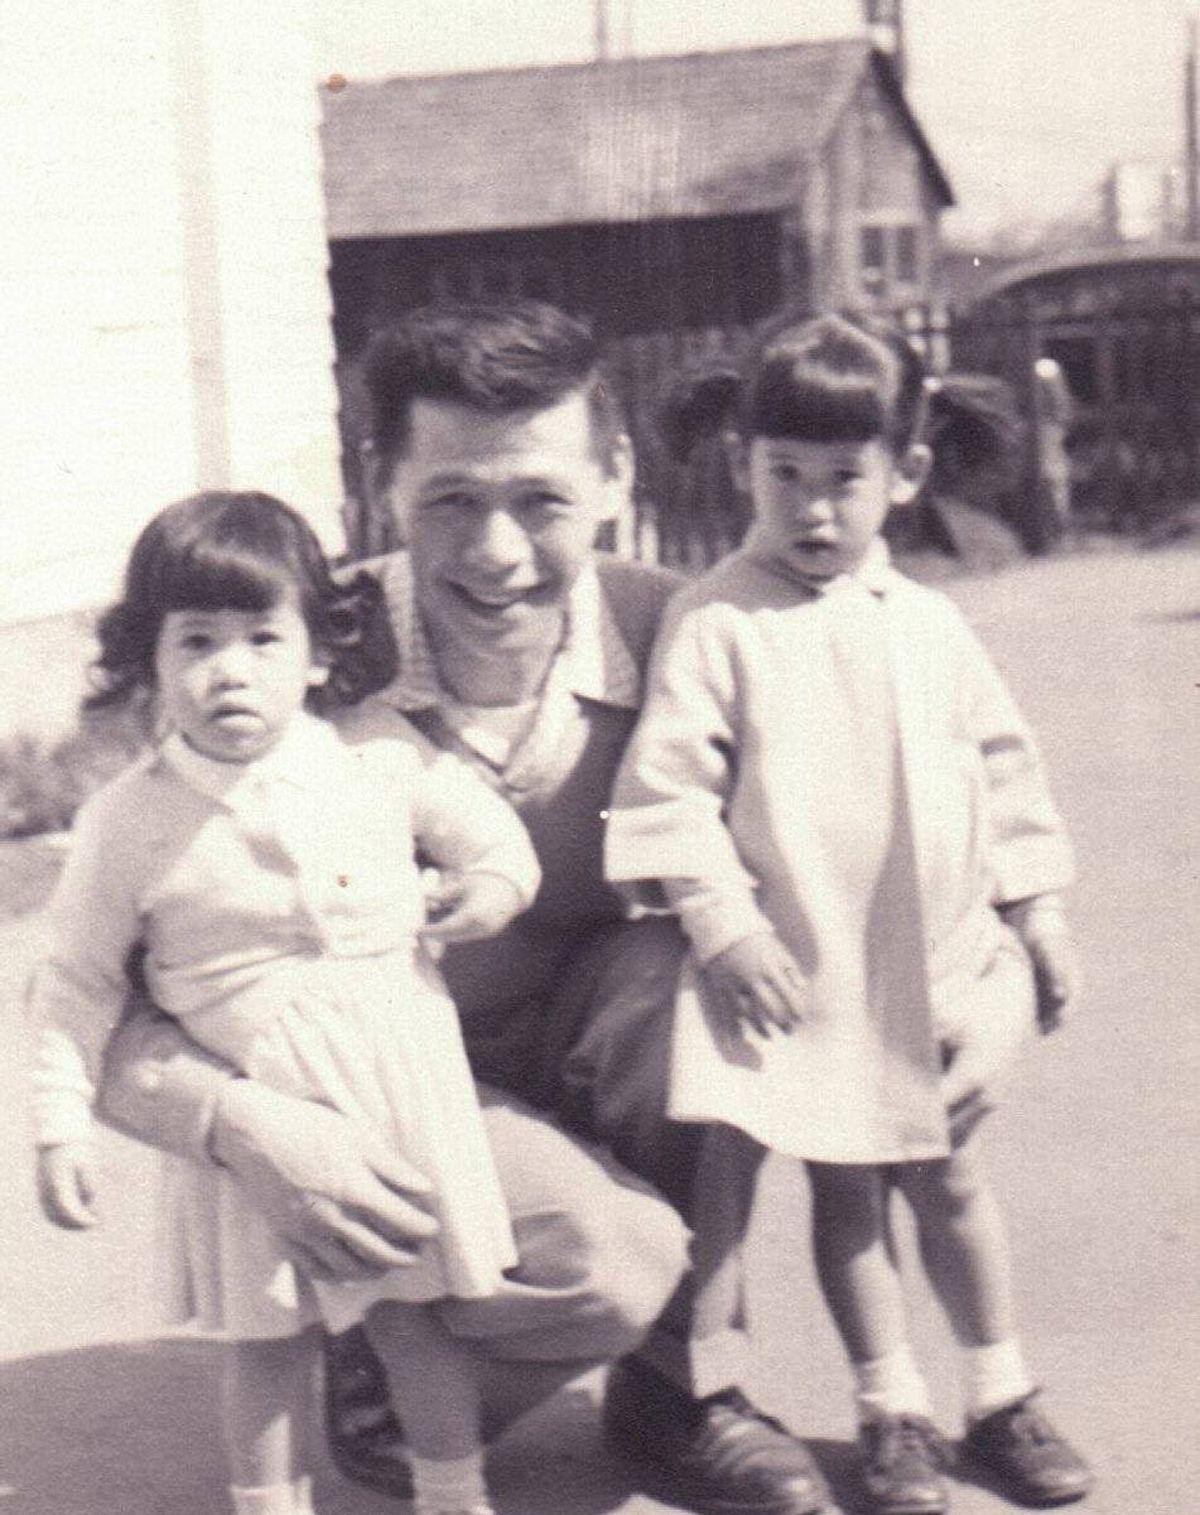 his is a photo of my dad with me (on the left) and my sister. This photo was taken in 1956. He's a wonderful man and I love him. I am blessed to still have him in my life.